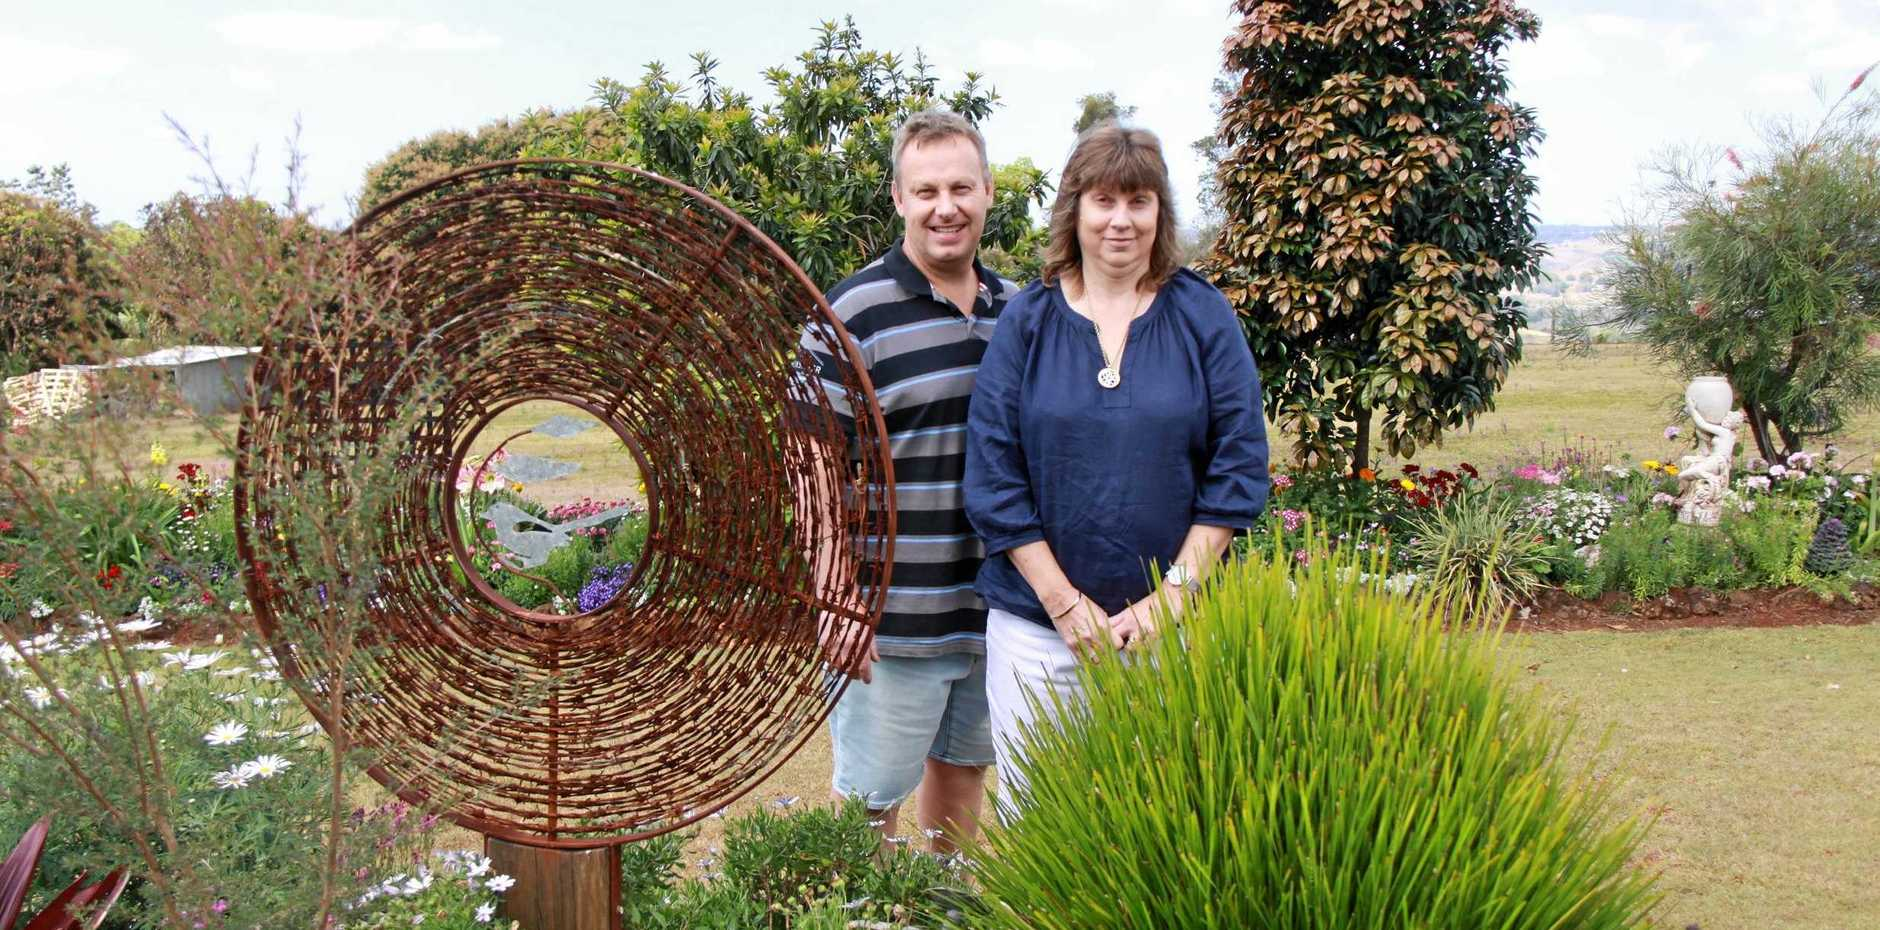 GORGEOUS GARDENS: Some of Lismore's most gorgeous gardens were winners in their Lismore Home Garden Education Club annual Spring Garden Competition. Paul and Maree Parkinson took out a number of awards including a fourth-time Champion Garden trophy.